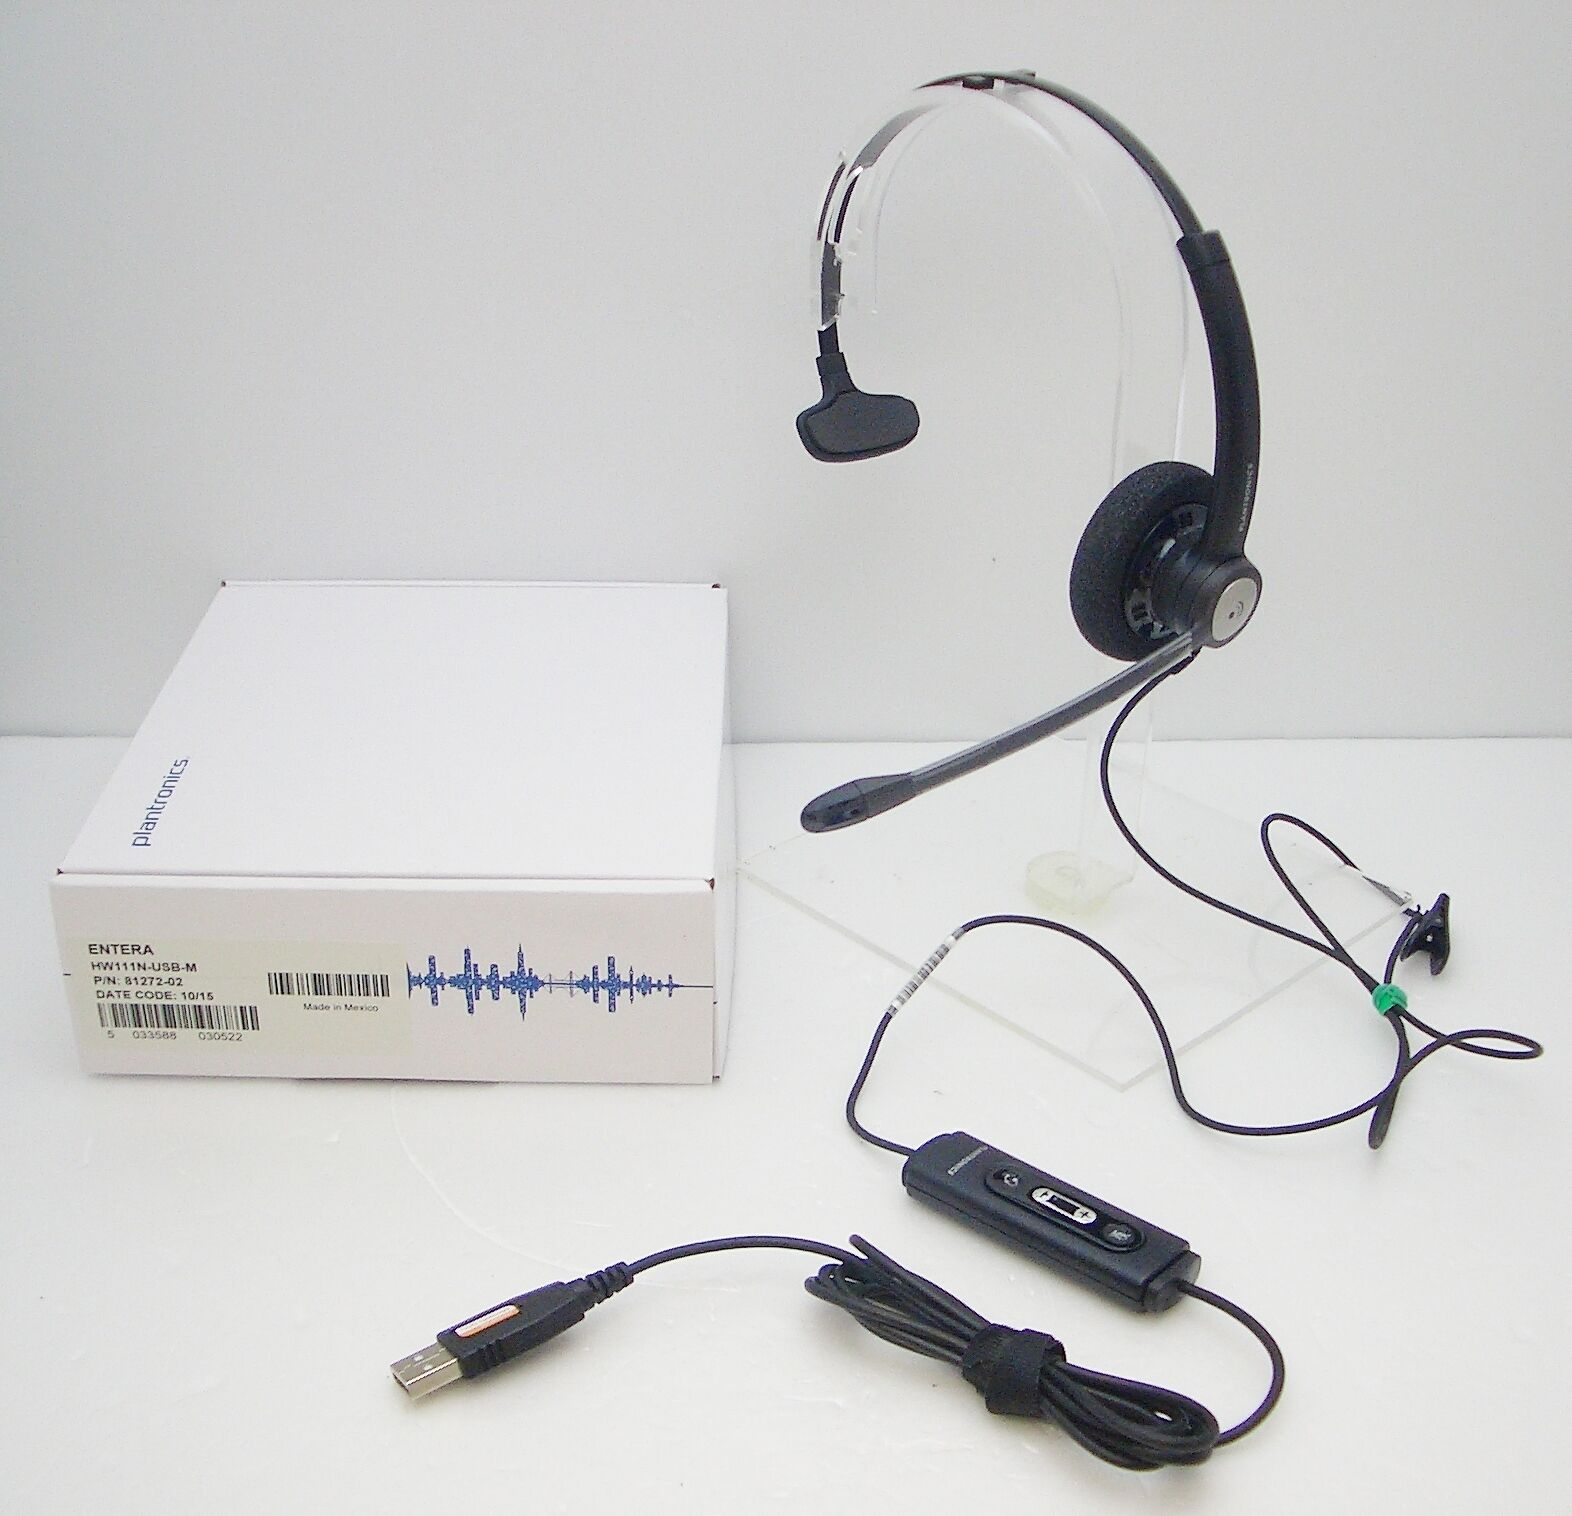 Lot of 2 Plantronics Blackwire C210 Monaural USB Computer Headset for Skype Chat